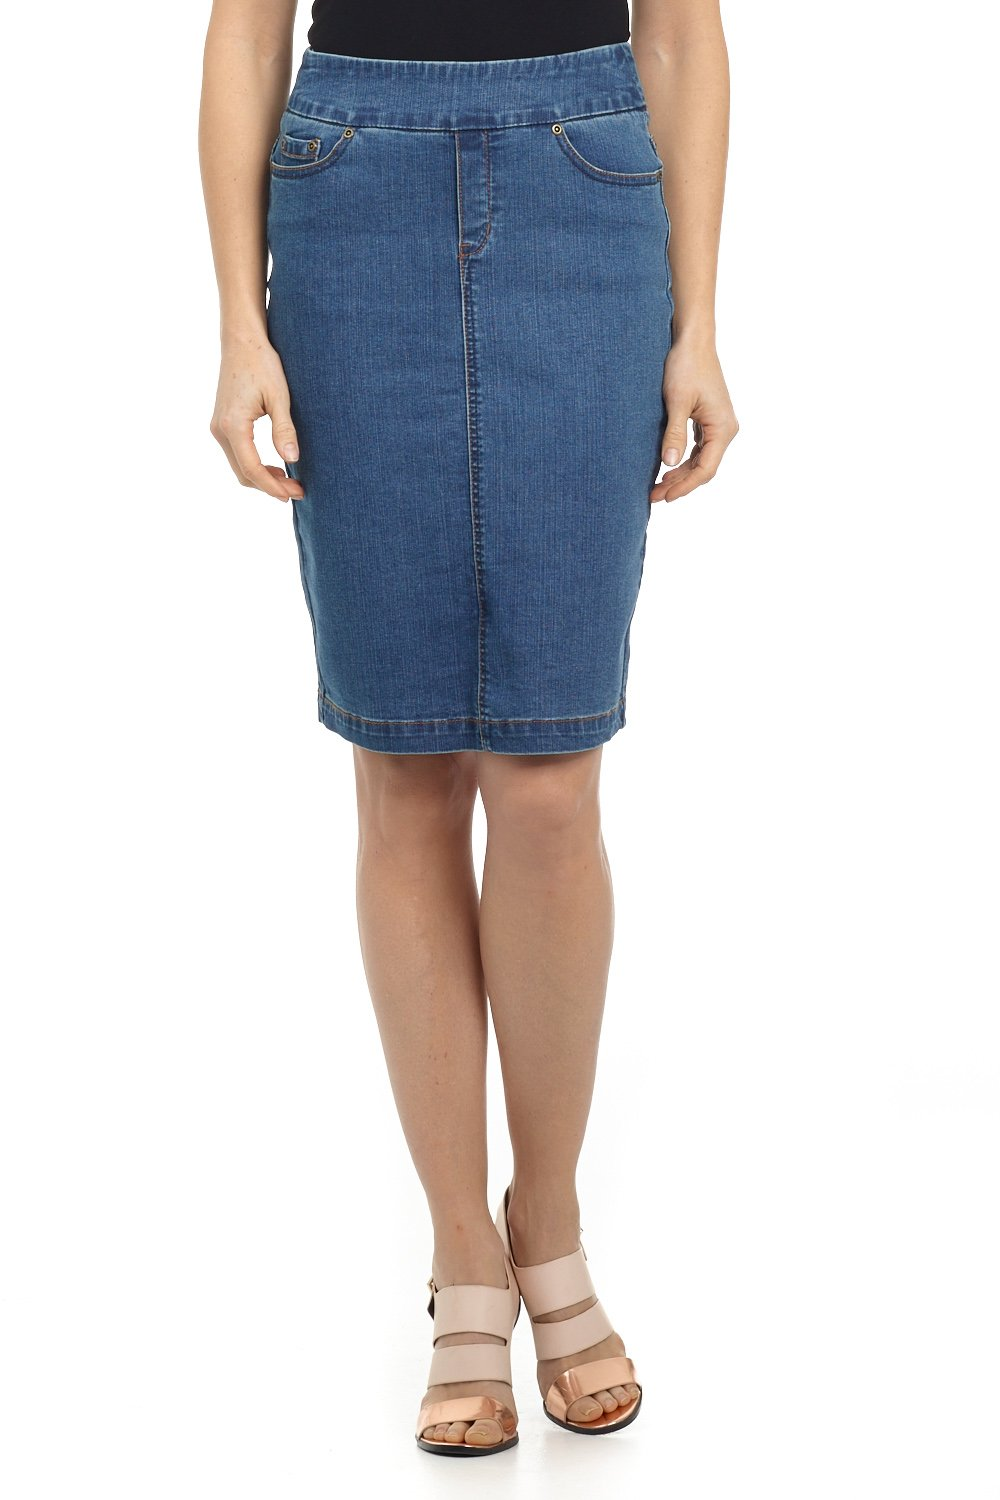 Rekucci Jeans Women's ''Ease In To Comfort Fit'' Pull-on Stretch Denim Skirt (10,Md. Stone Wash)